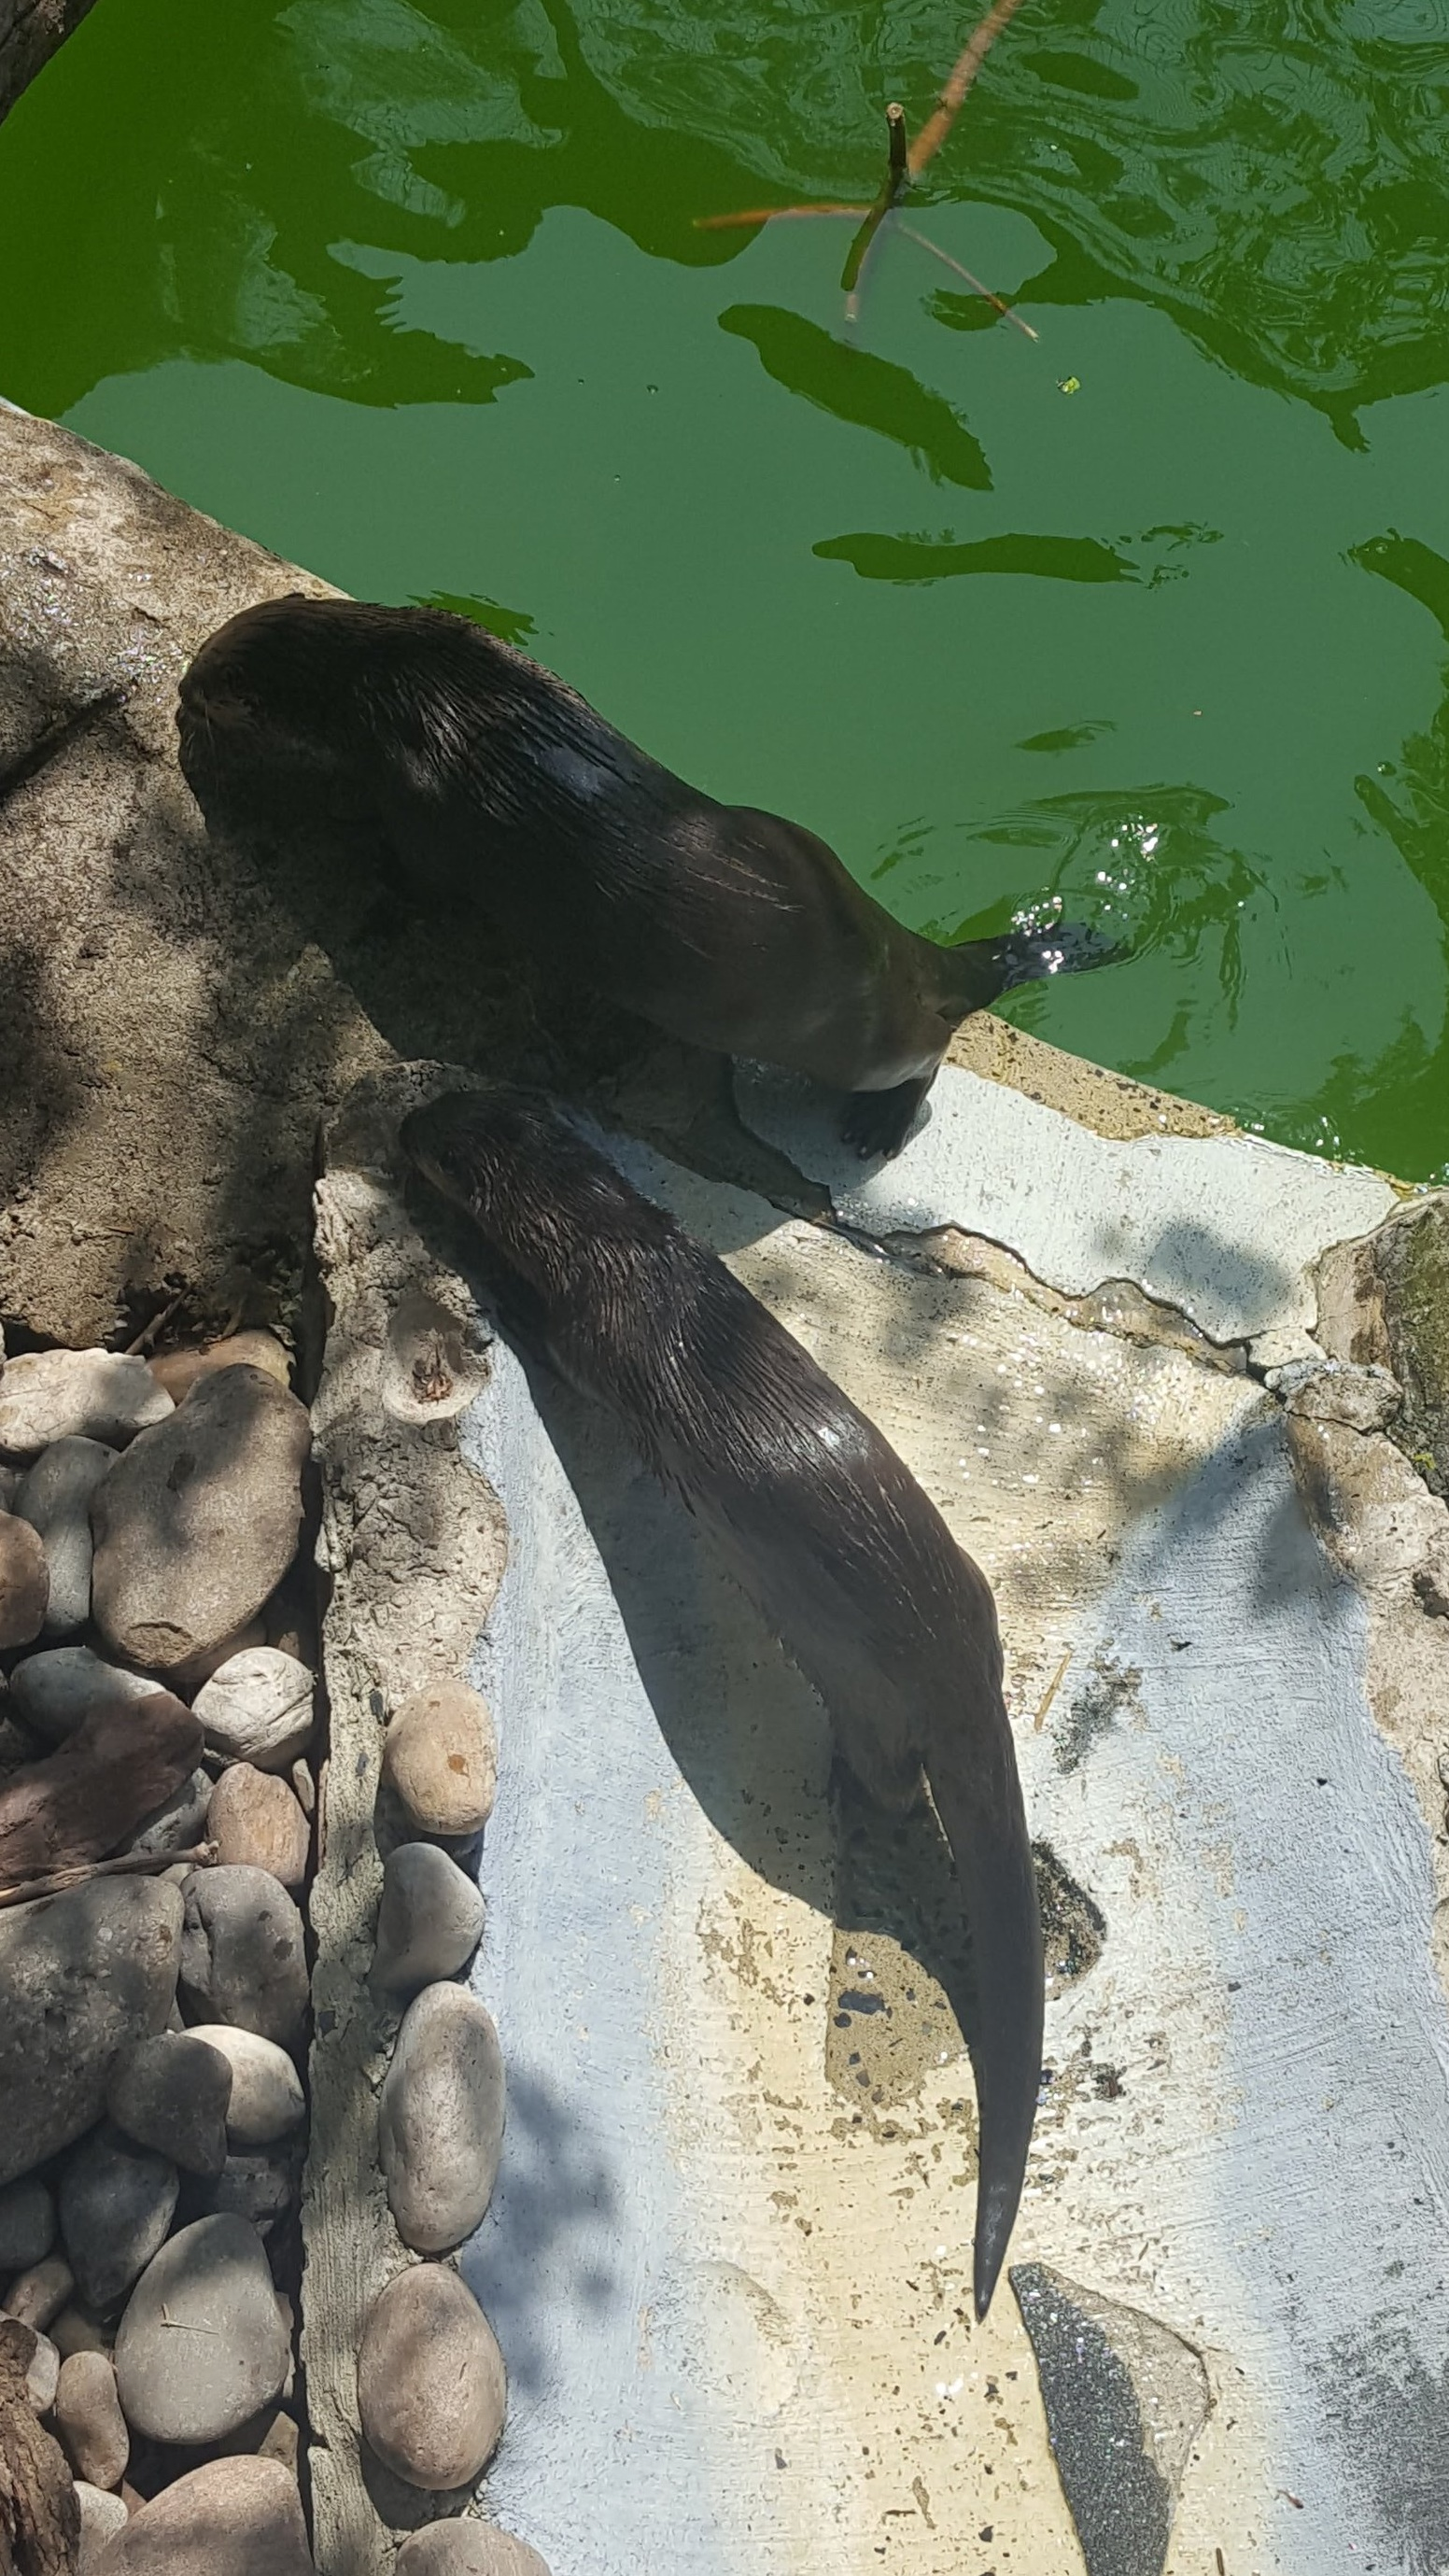 Otters+Playing+and+Keeping+Cool+in+the+Summer+heat